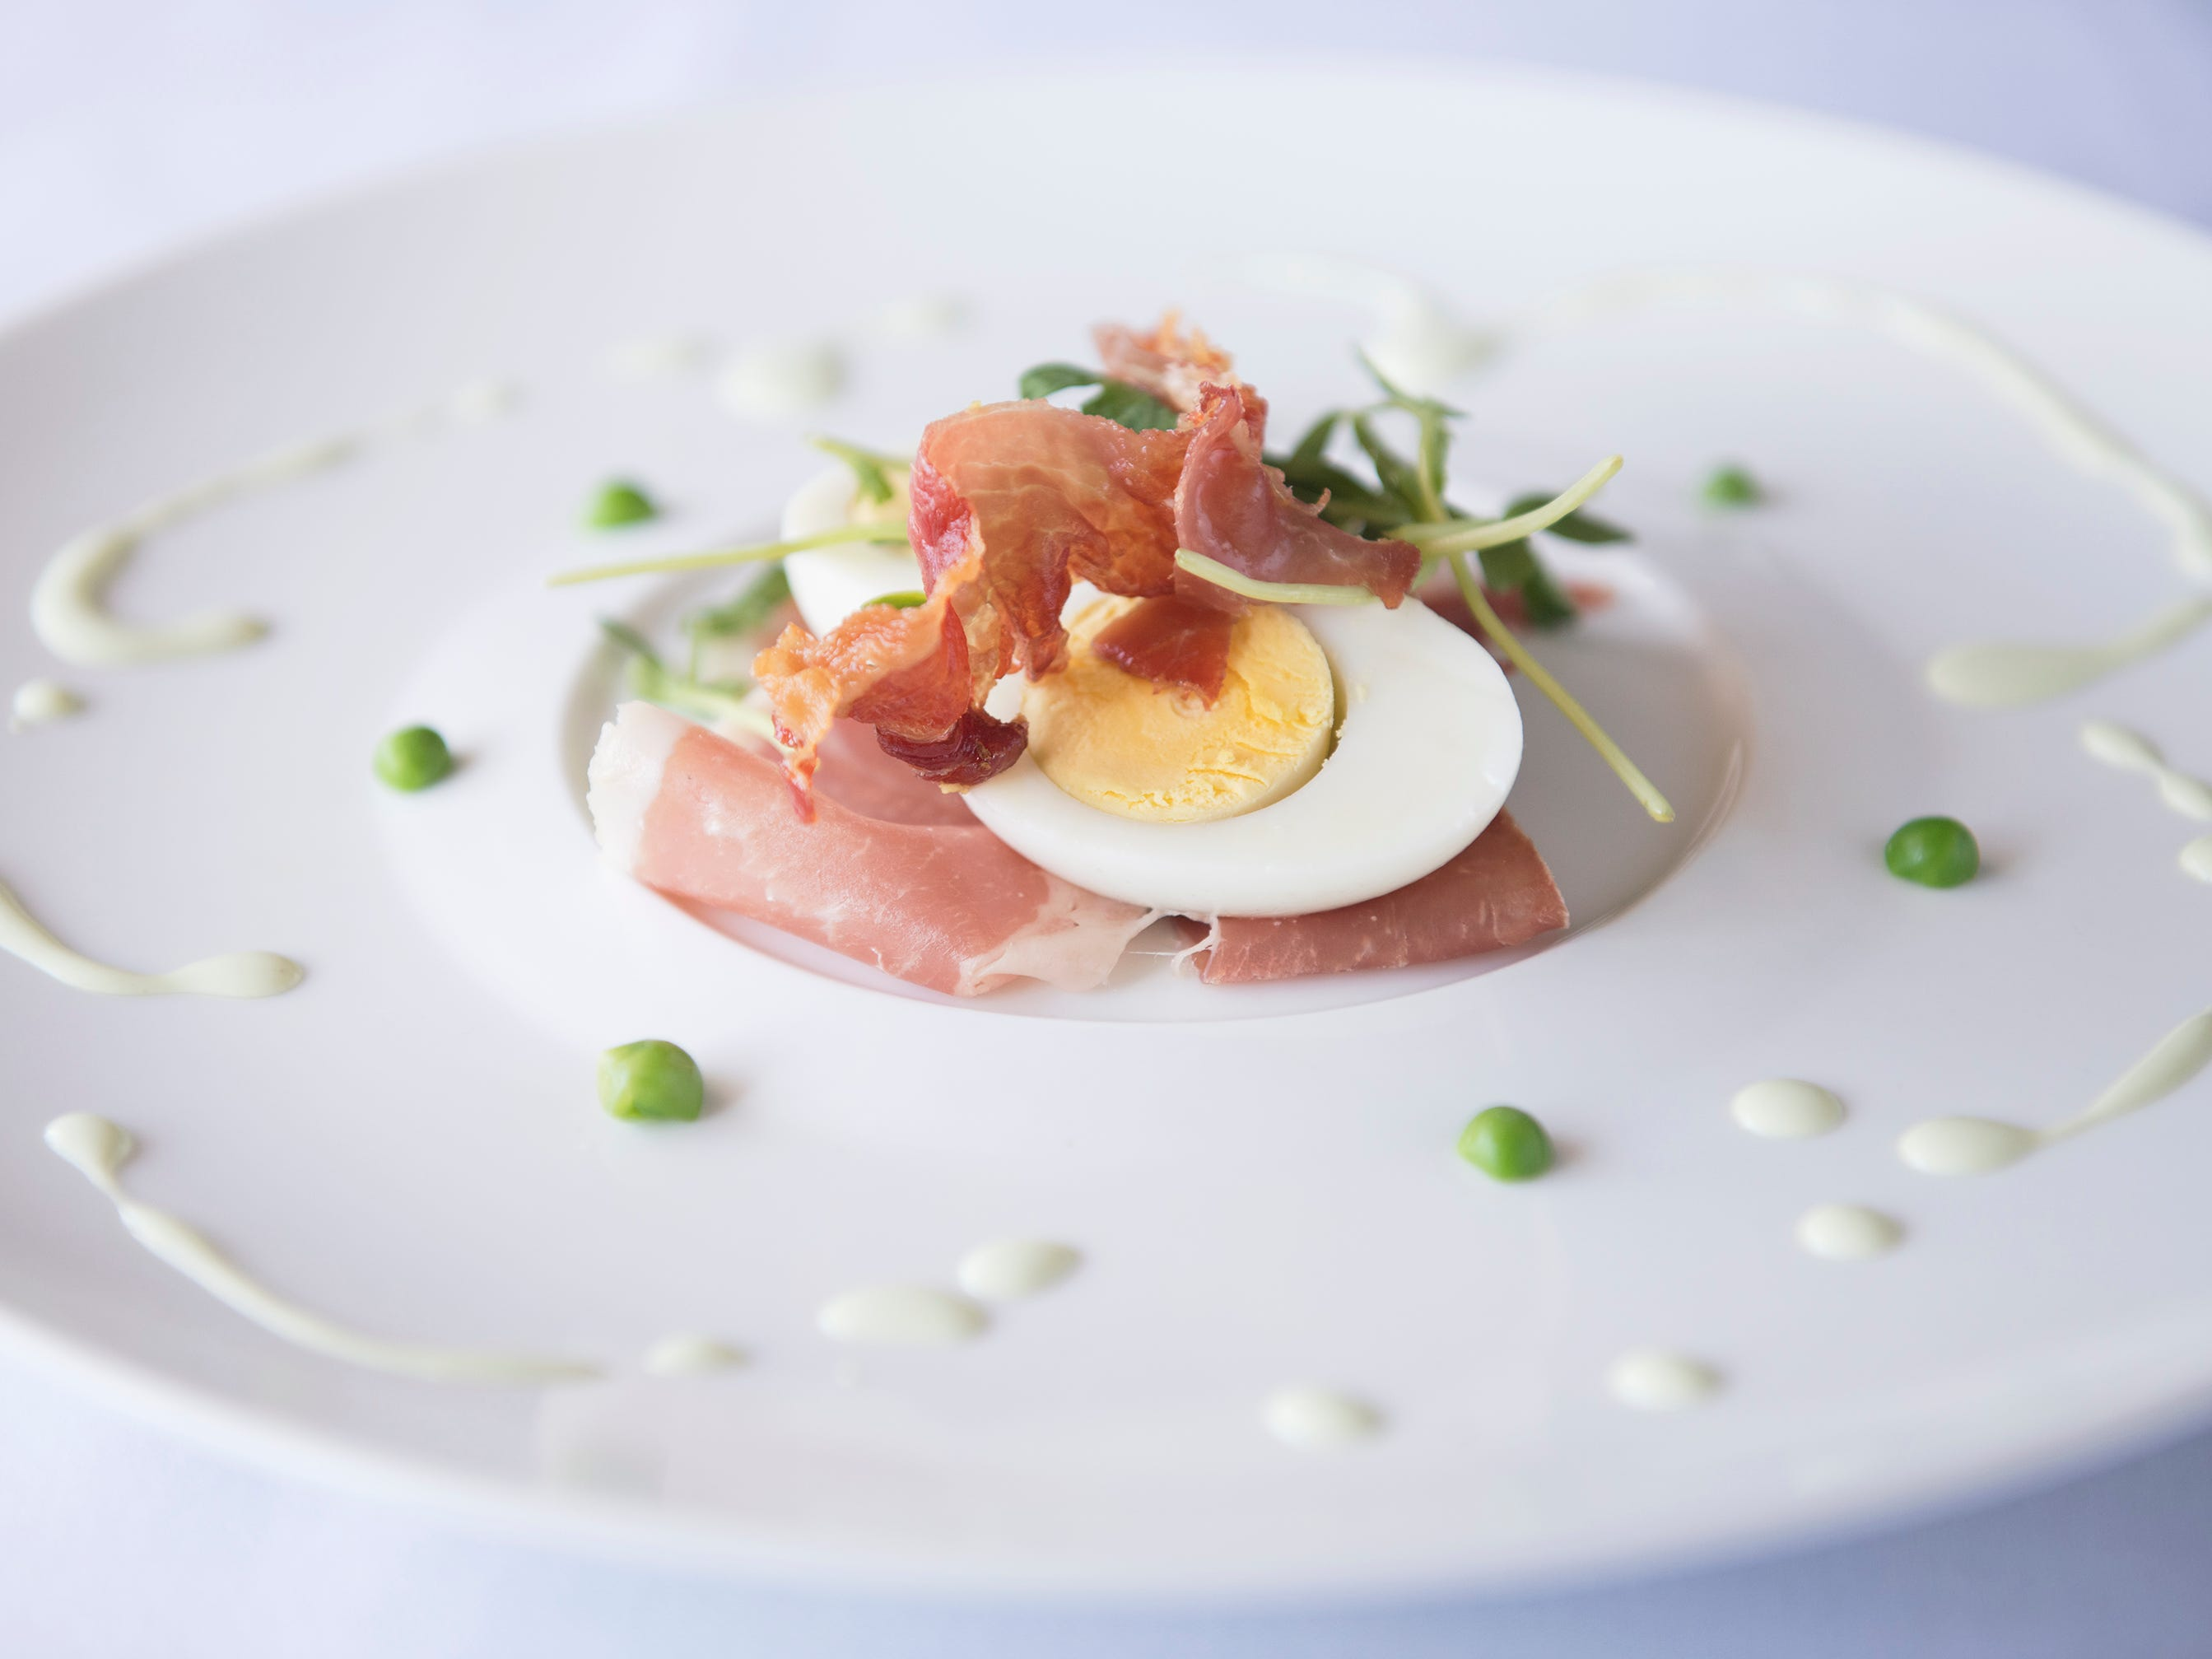 """Ham and Eggs"", prosciutto, deviled egg, and English peas, is a second course option on the SJ Hot Chefs' Spring Restaurant Week menu of Braddock's in Medford."